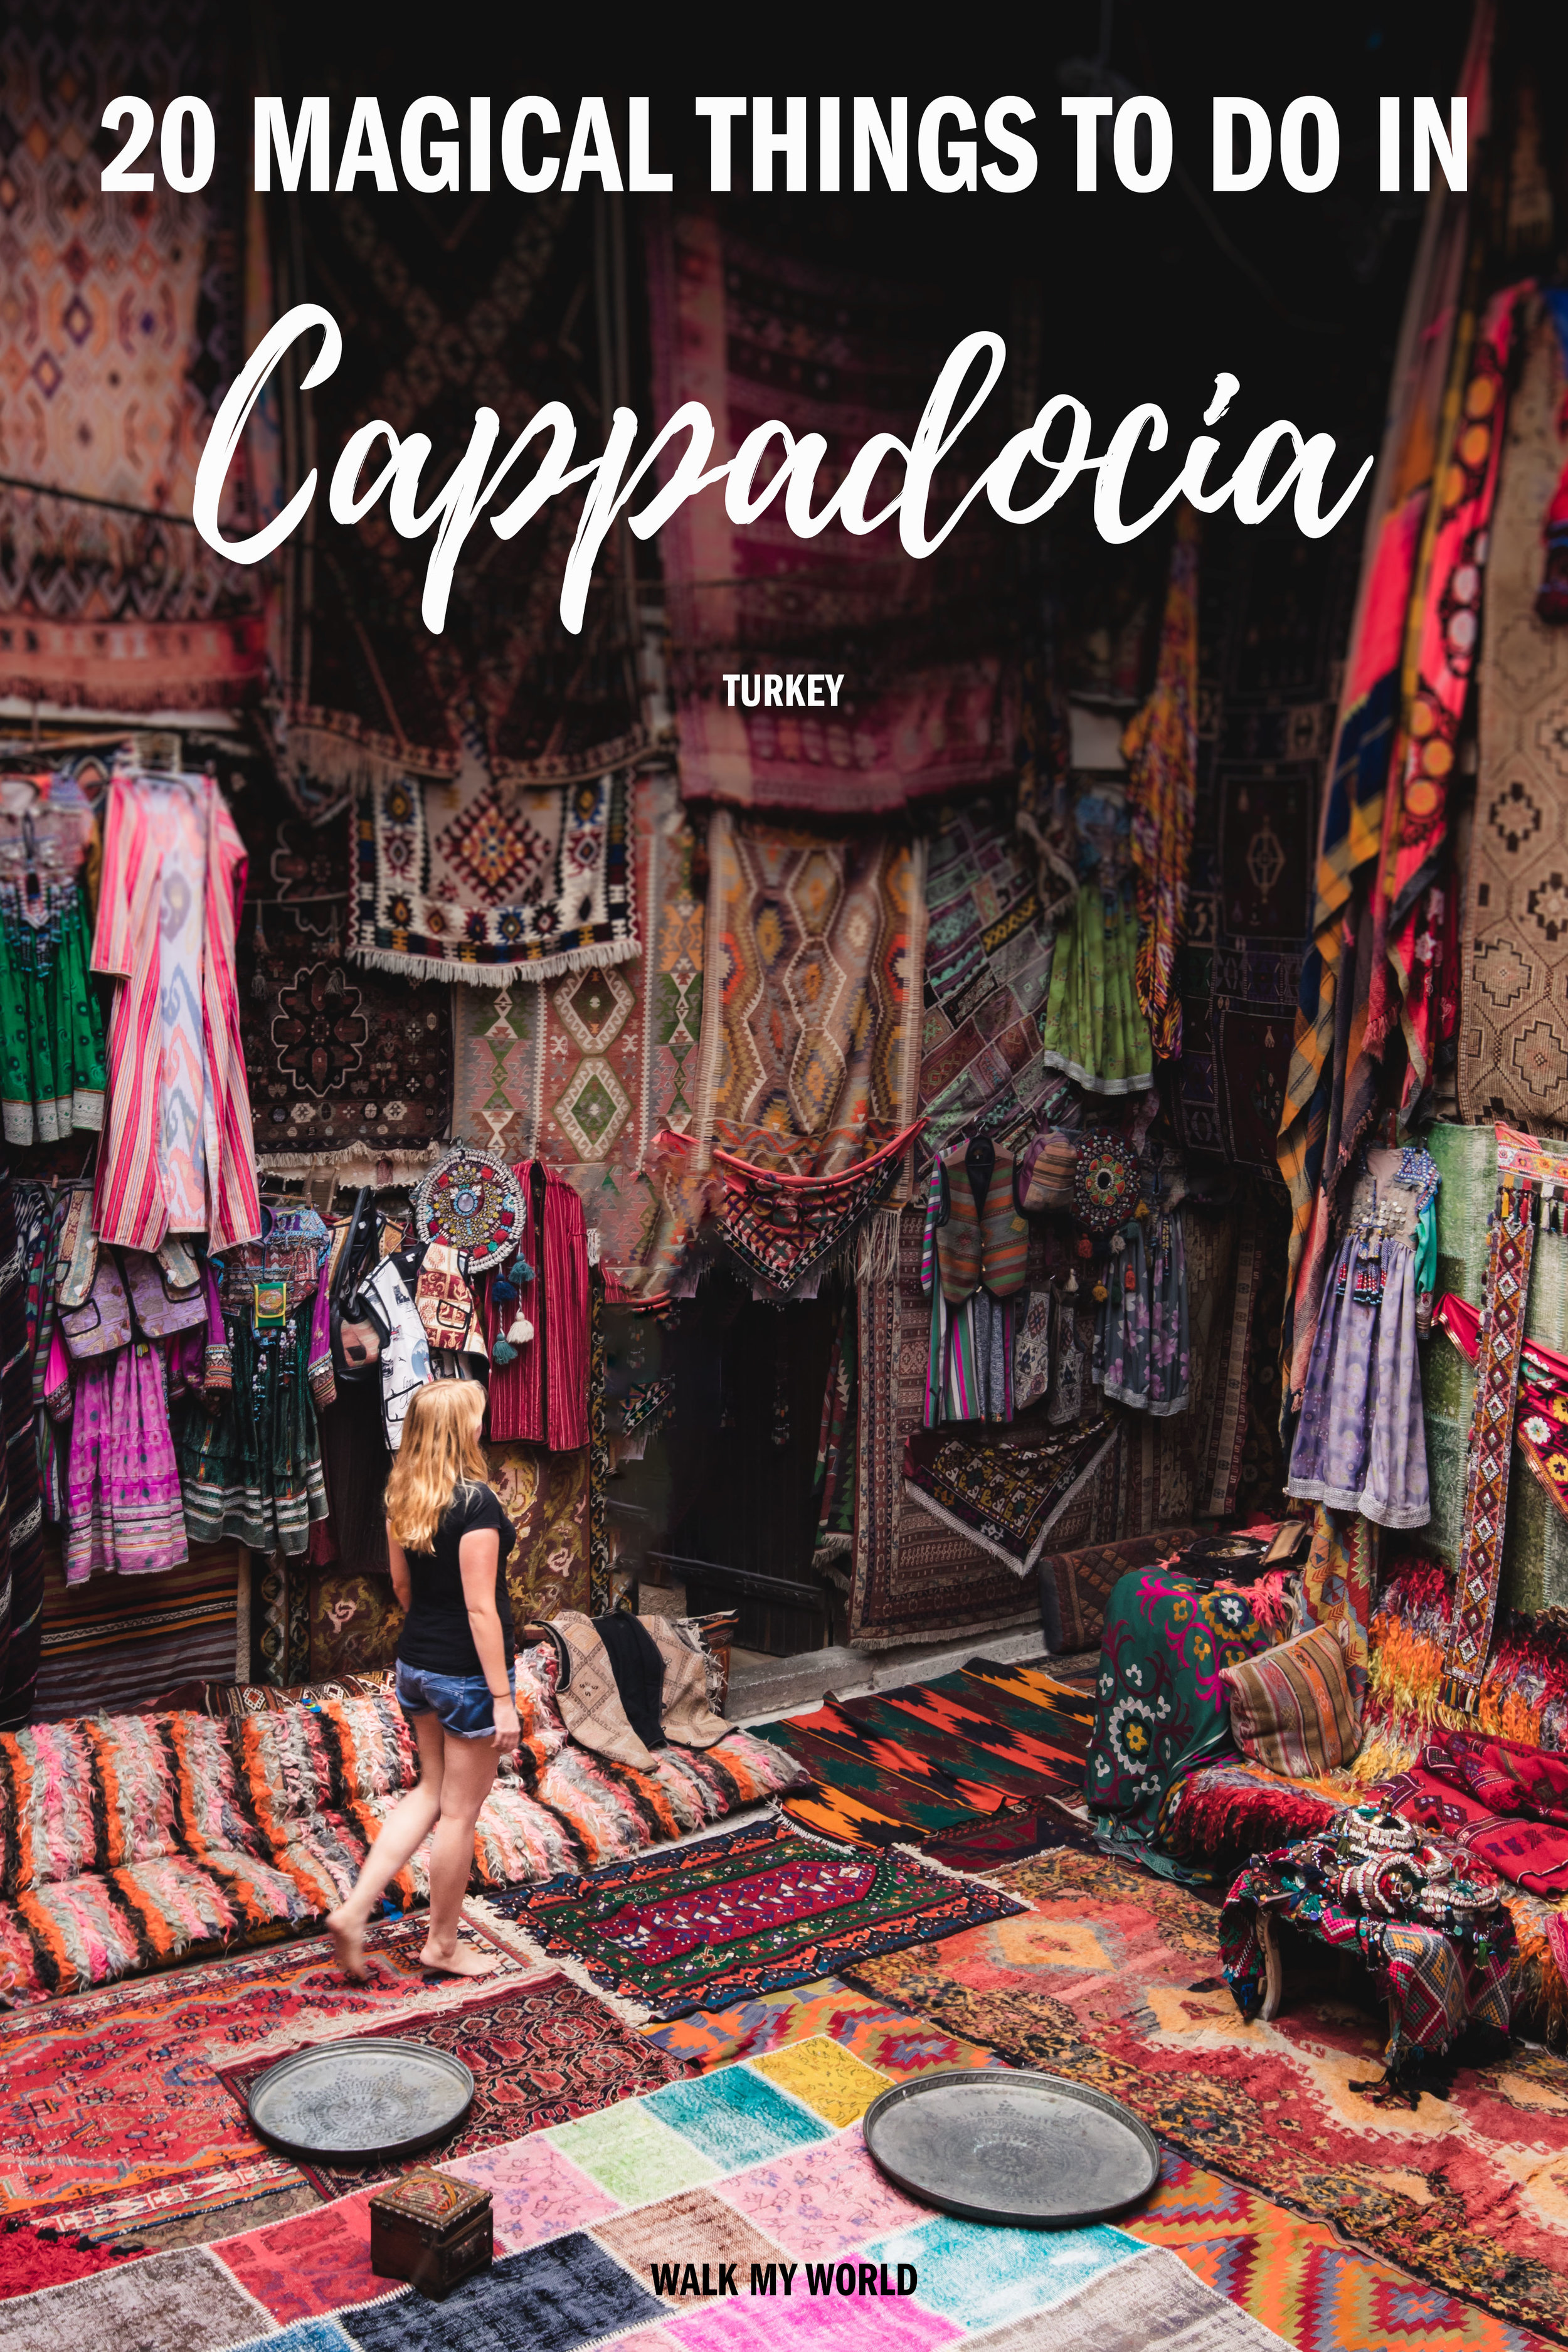 The 20 things you must do in Cappadocia from the bucket list items in Goreme to hidden gems in the surrounding areas. We'll tell you everything you must see, how to get there, the best times to go and all you need to know for a magical trip to Cappadocia. #Cappadocia #Turkey